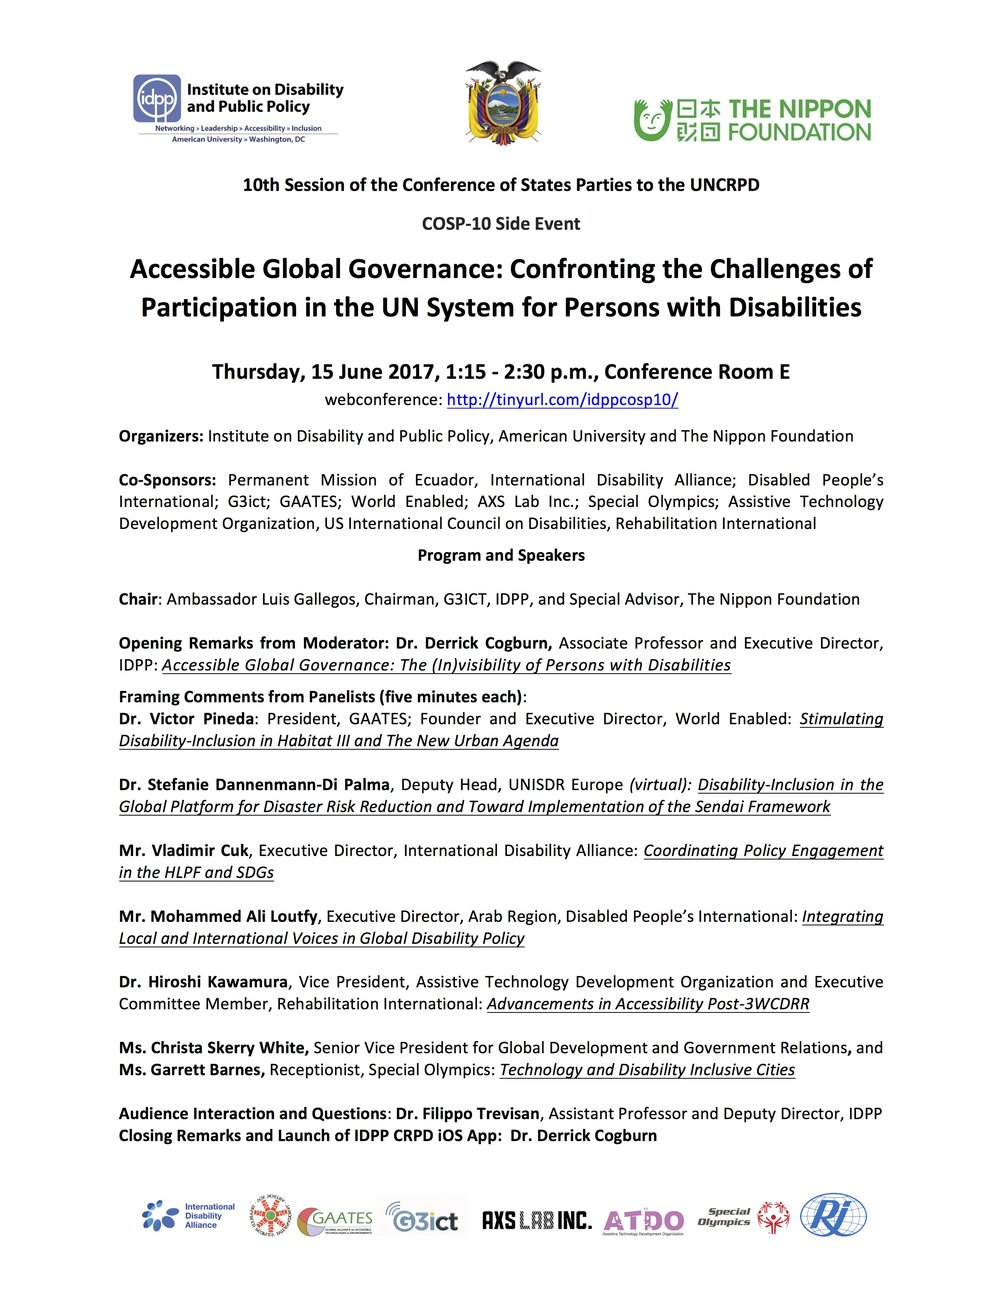 Accessible Global Governance-COSP-10-Final-v1.jpg